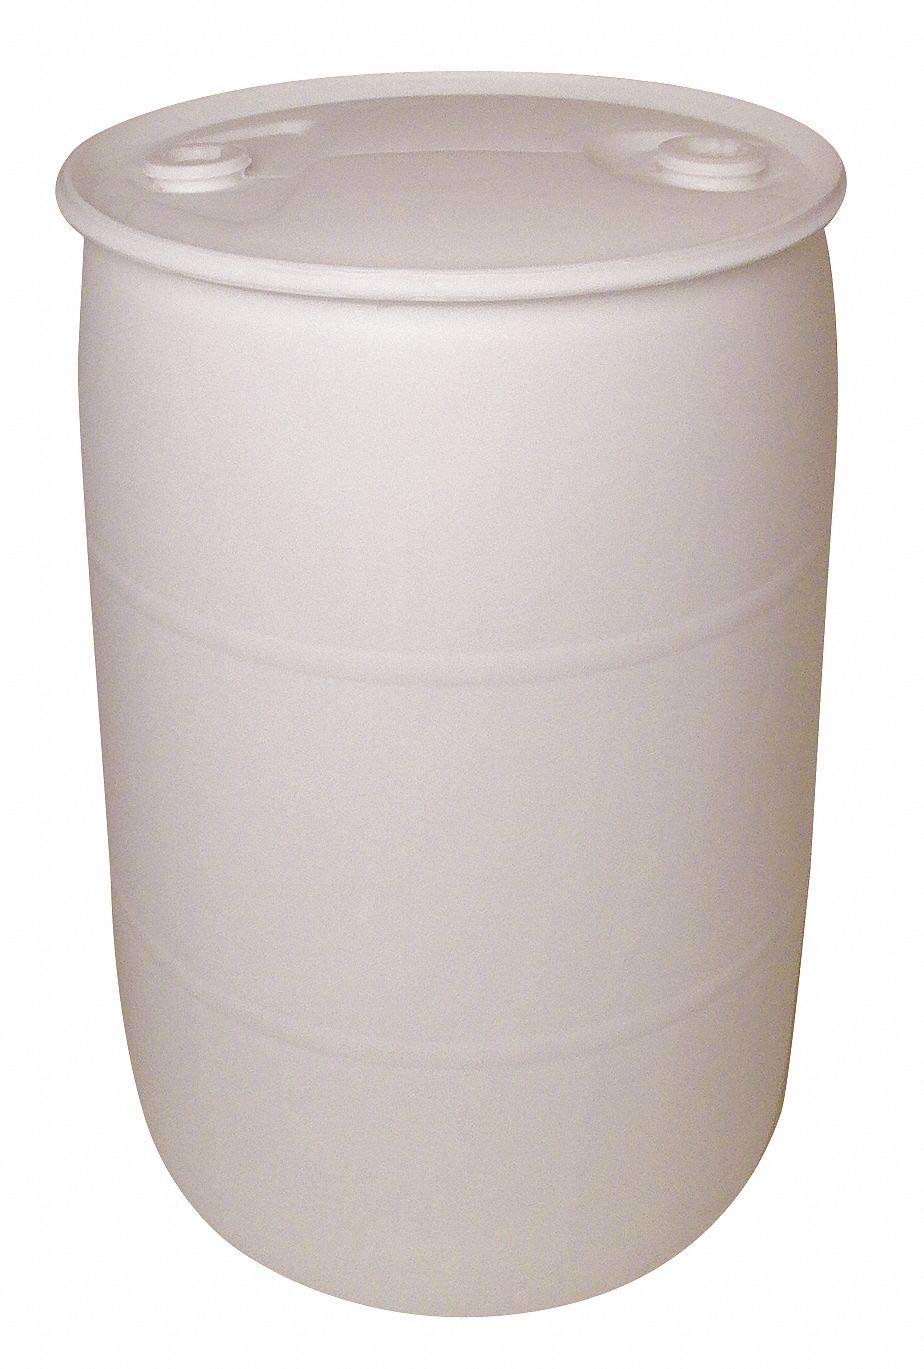 Poly Drum, Closed Head, 55 Gal, White